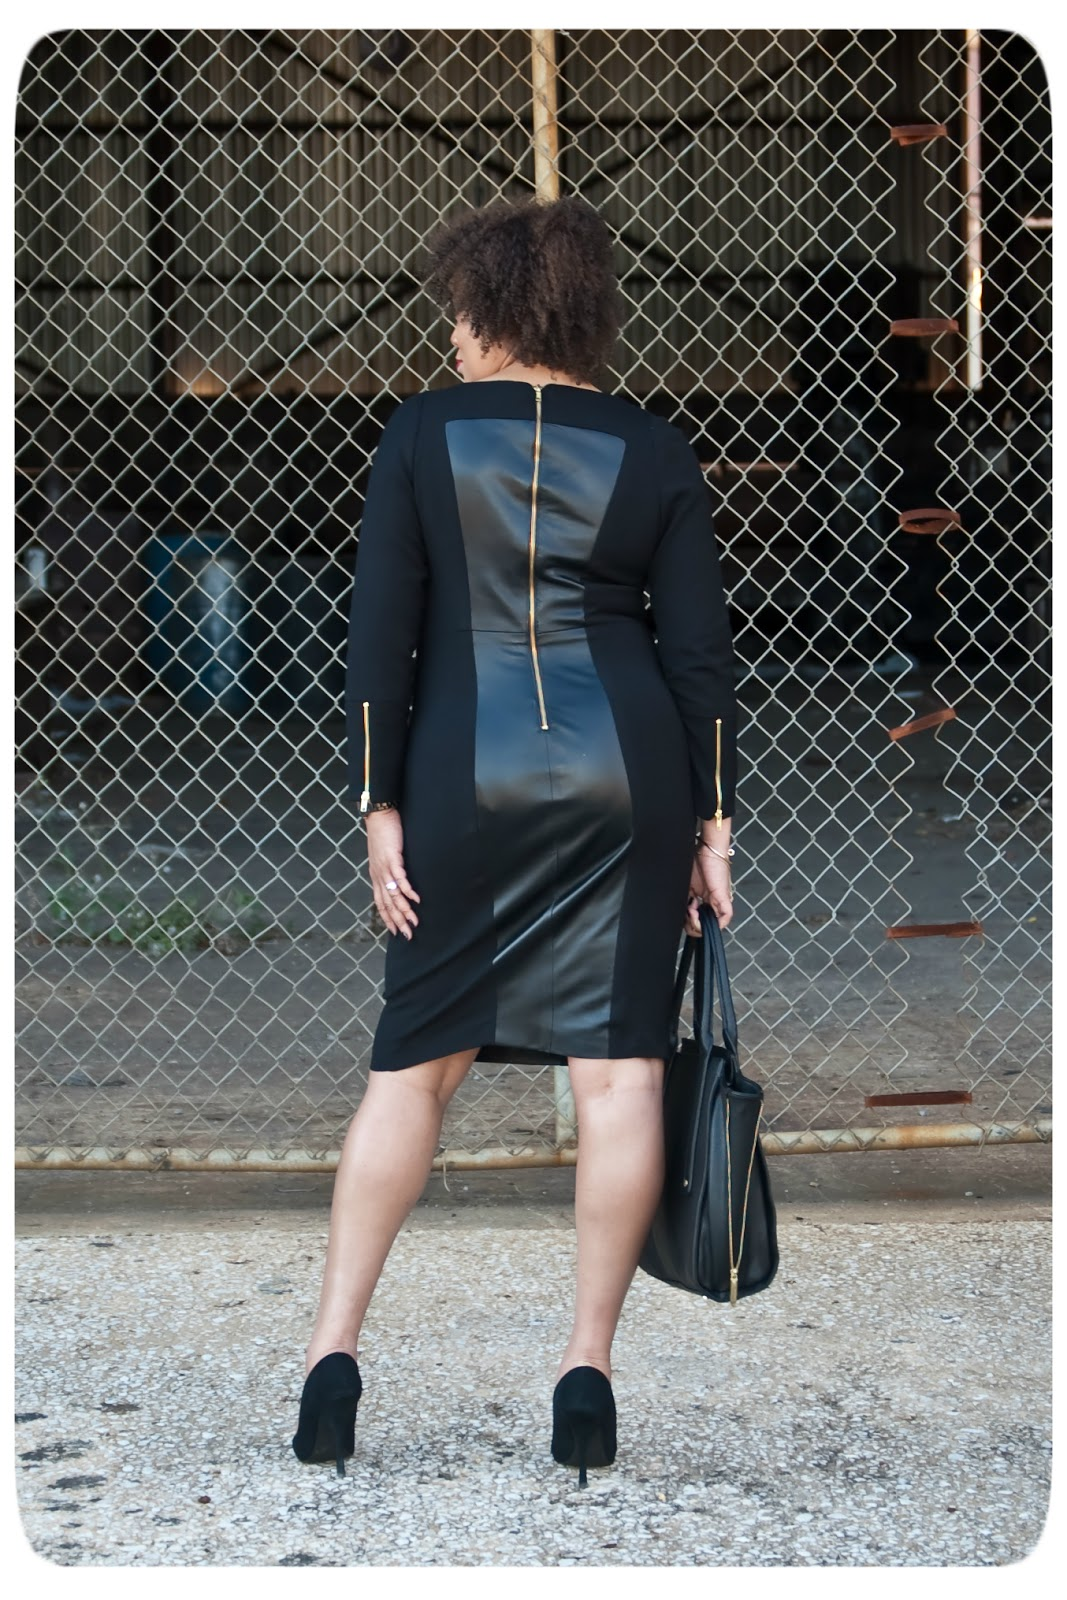 Leather Dress - Fall 2018 Trends - Erica Bunker DIY Style!